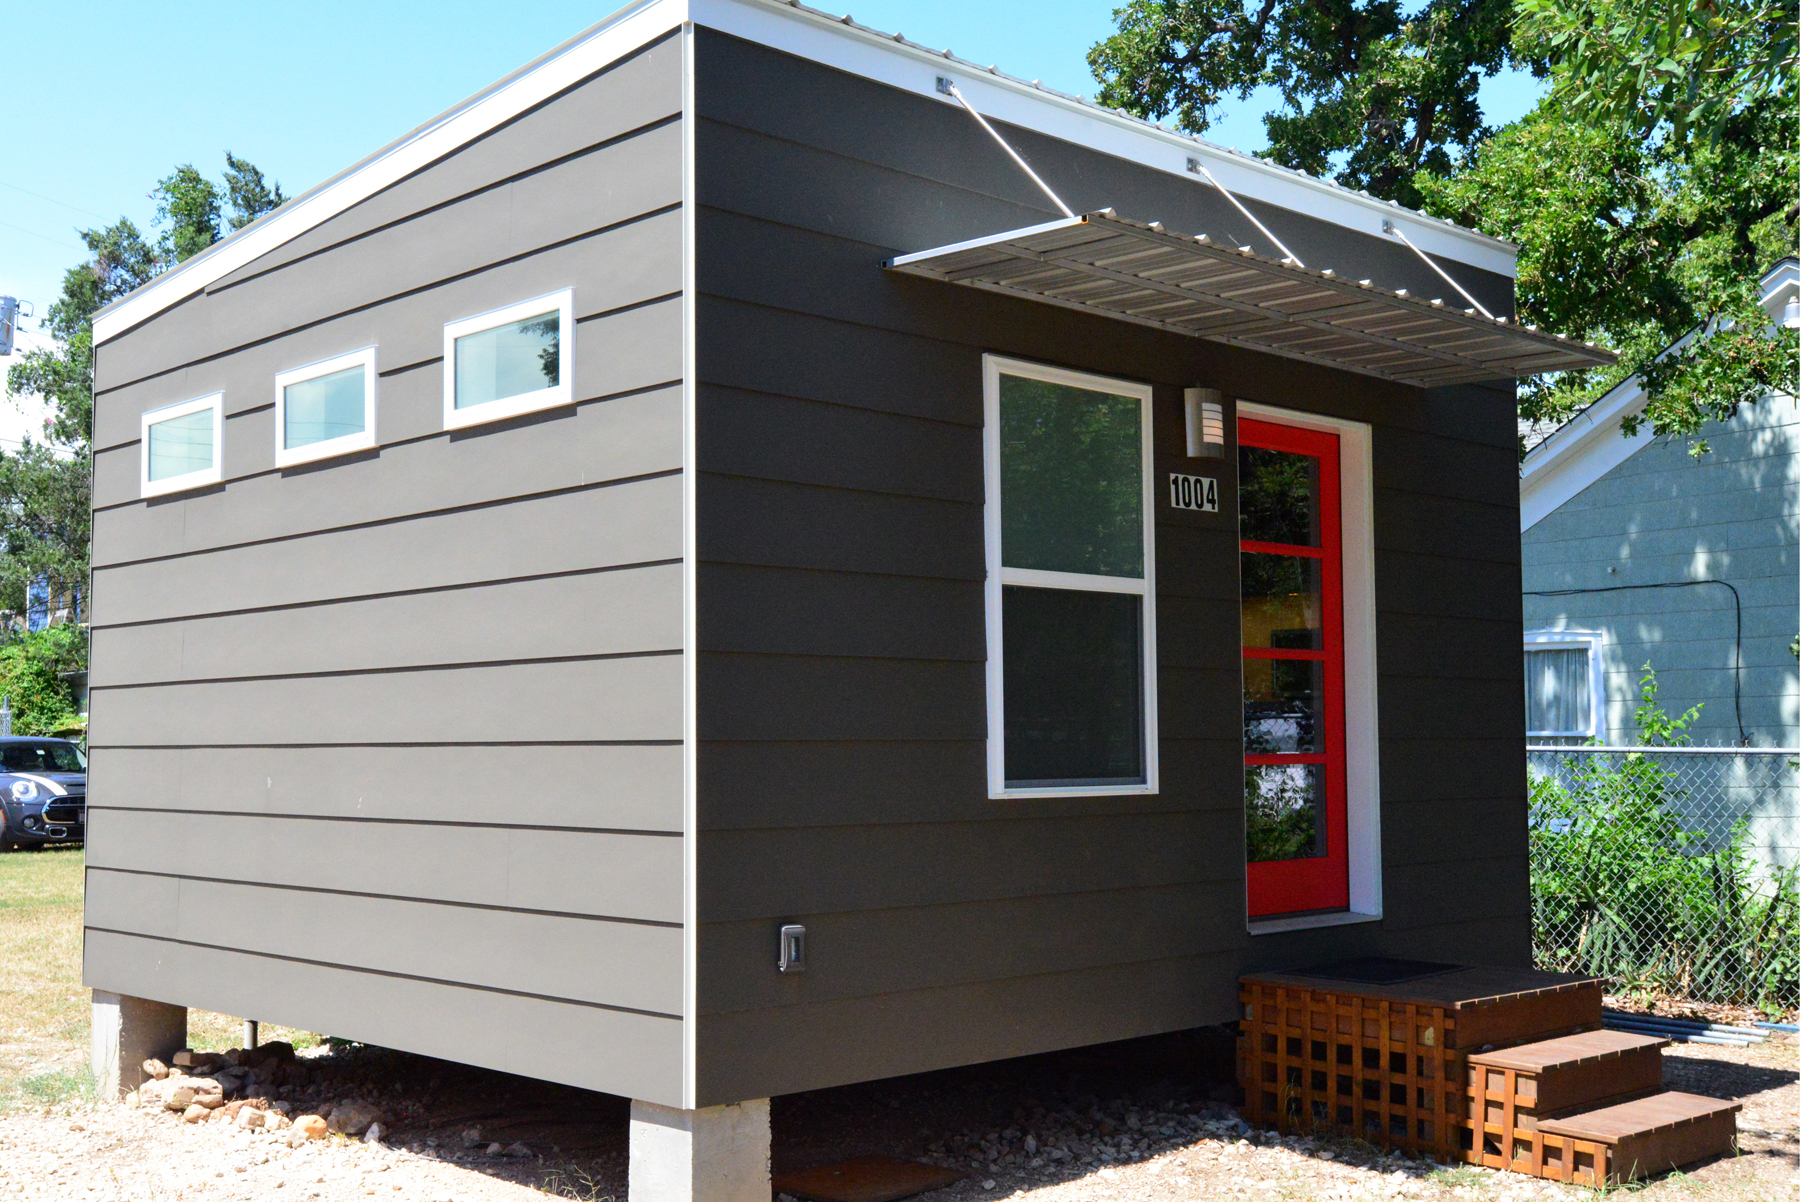 Cost to build a new house in austin - From Curbed Austin